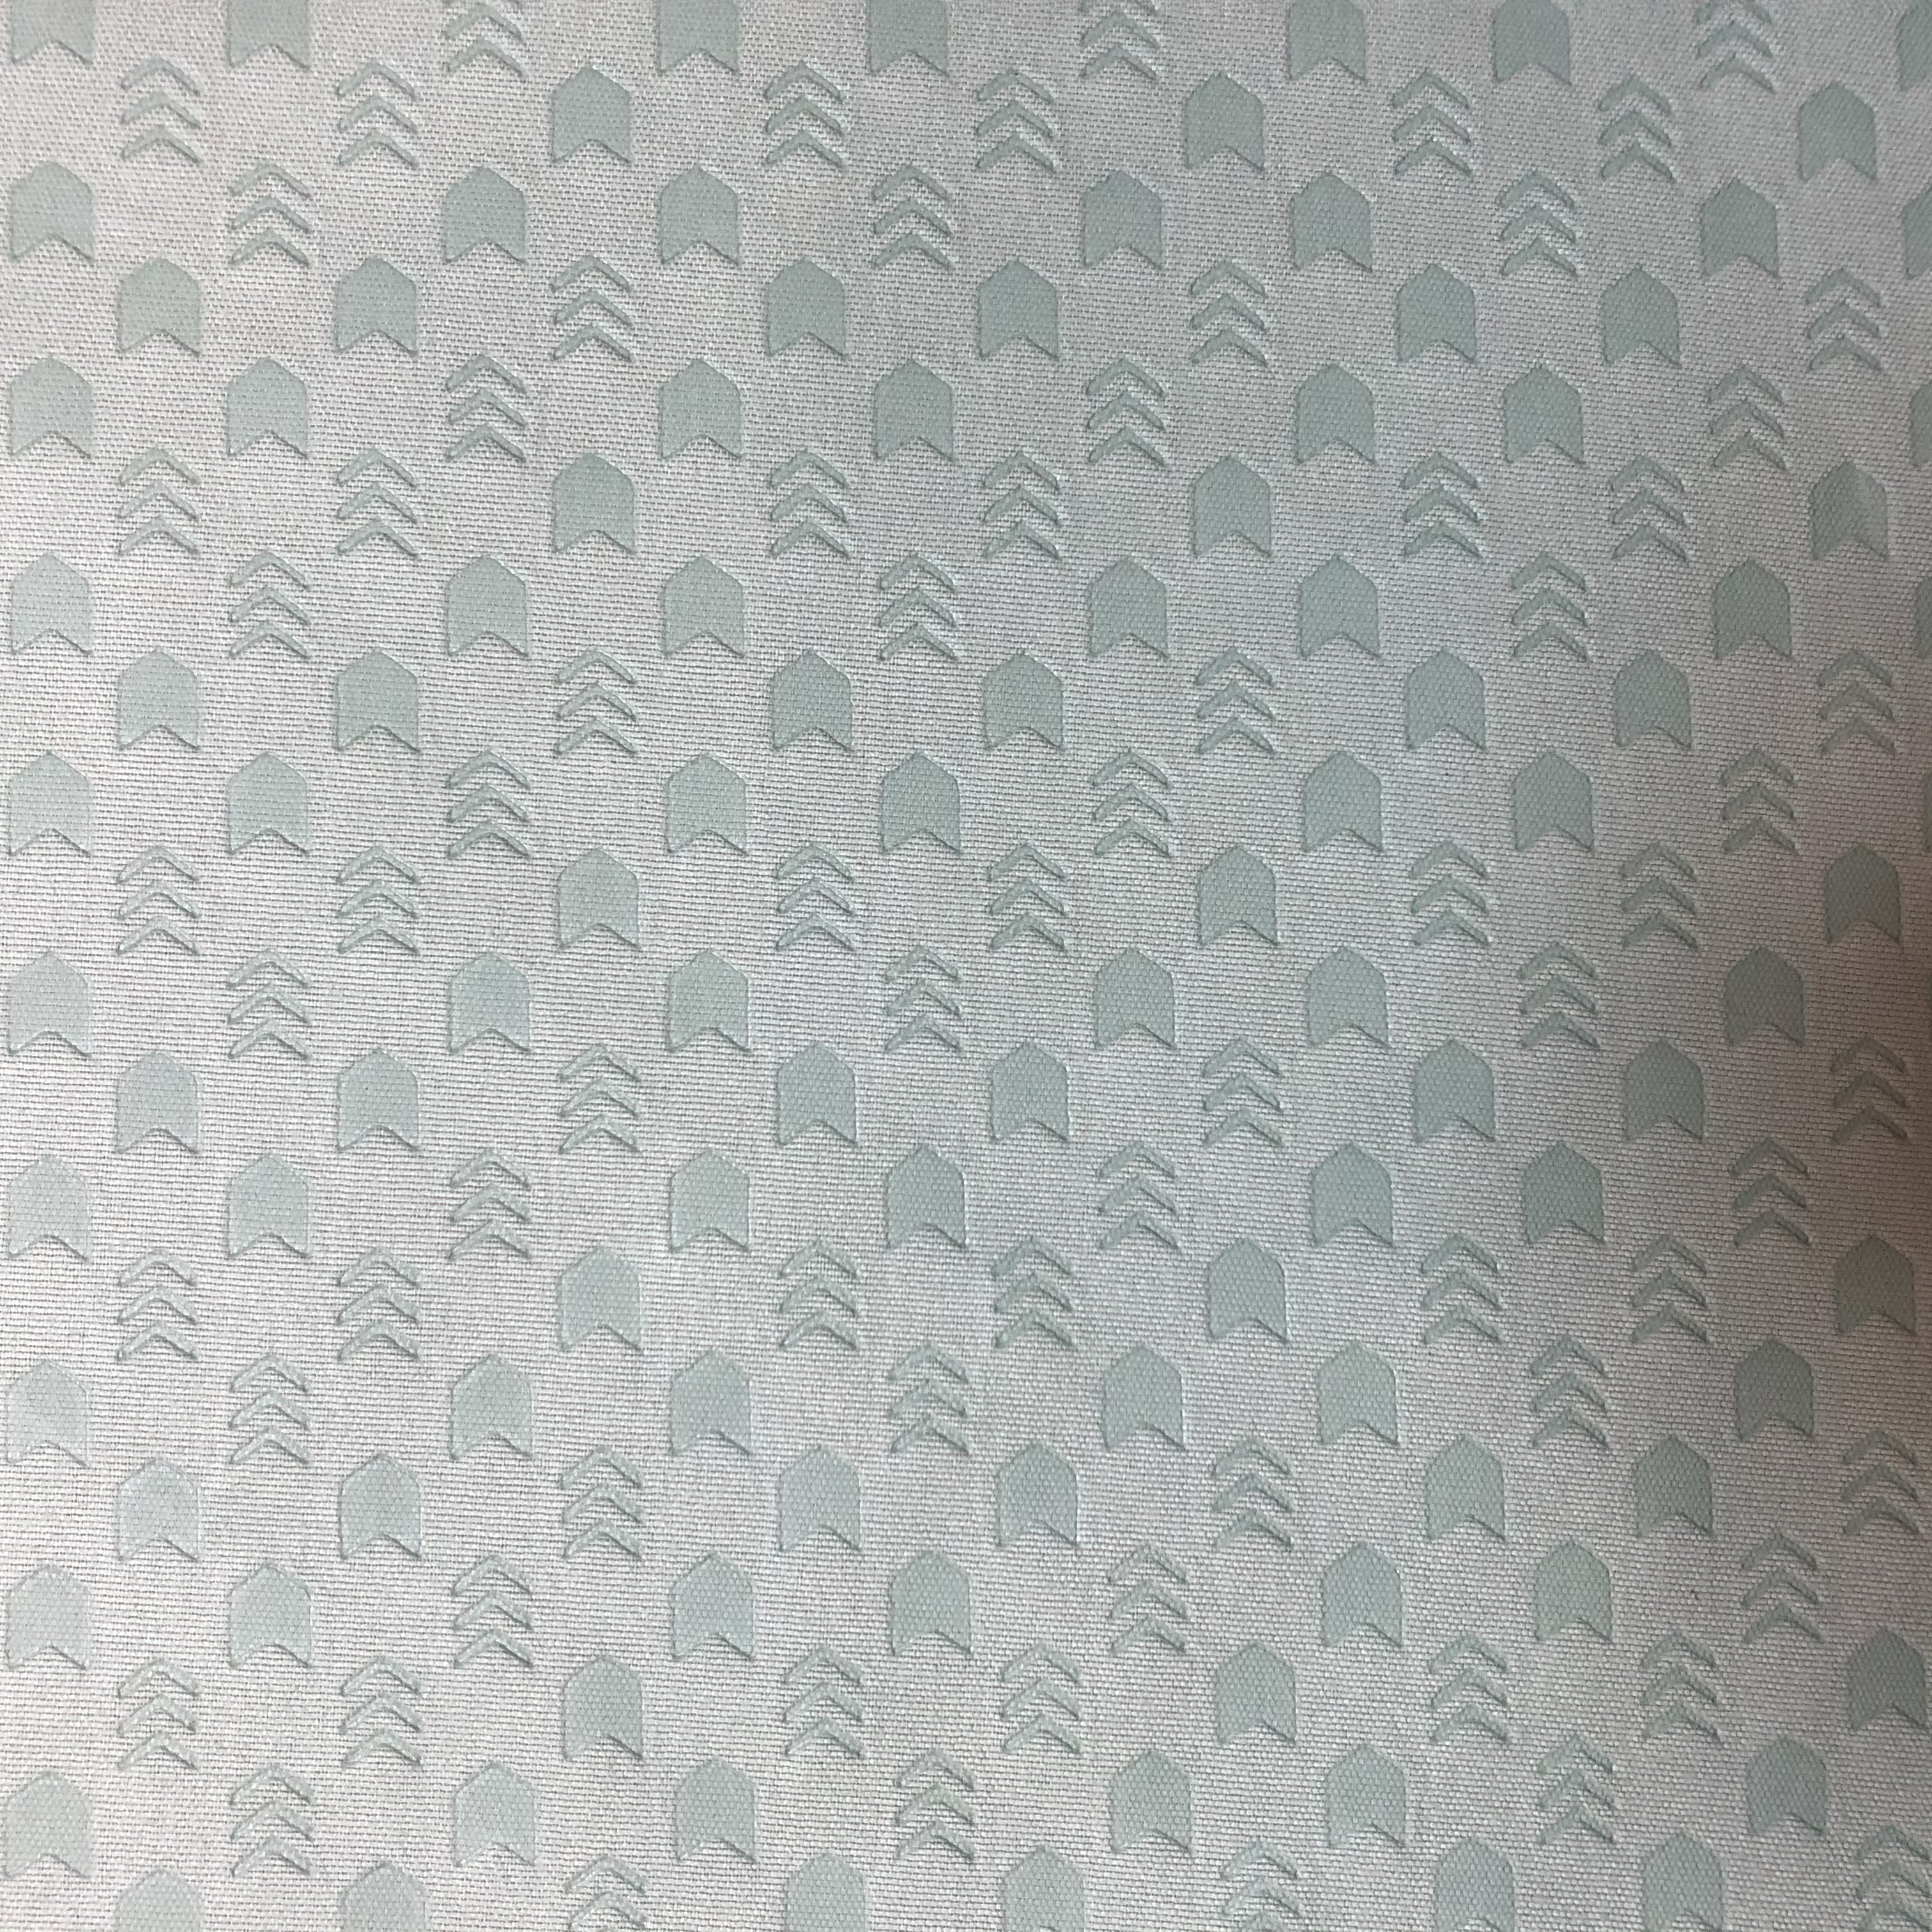 Embossed Polyester Microfiber Fabric Home Textile Fabric